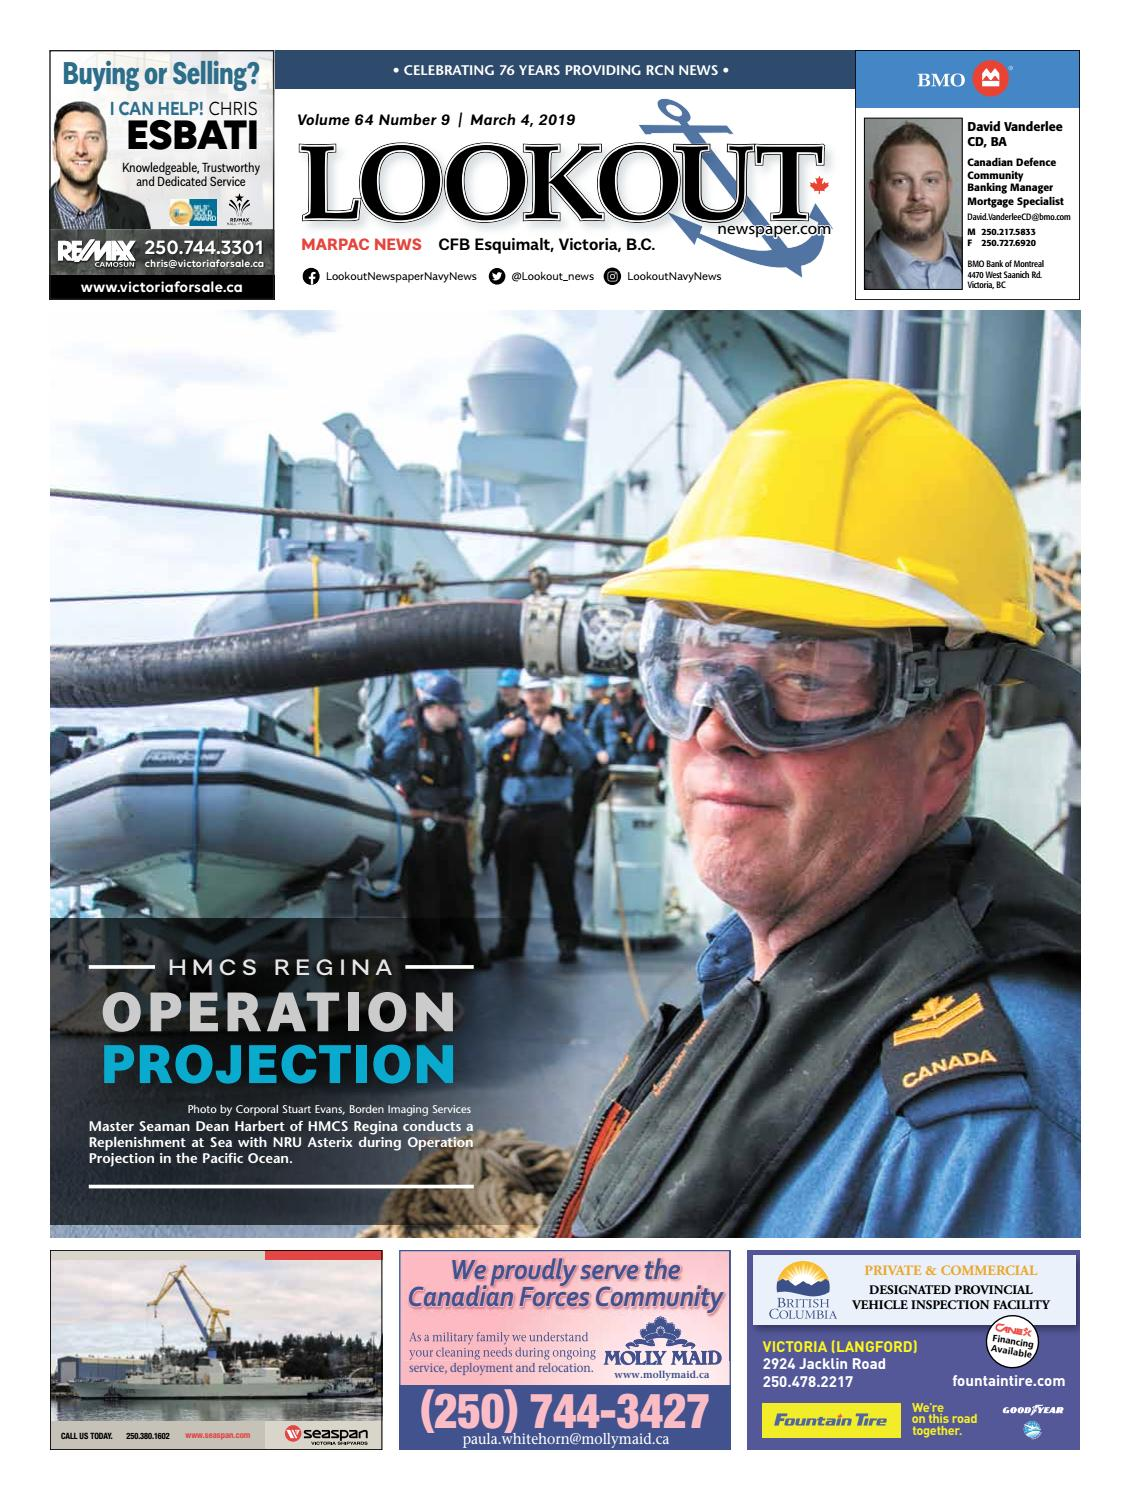 Lookout Newspaper, Issue 9, March 4, 2019 by Lookout